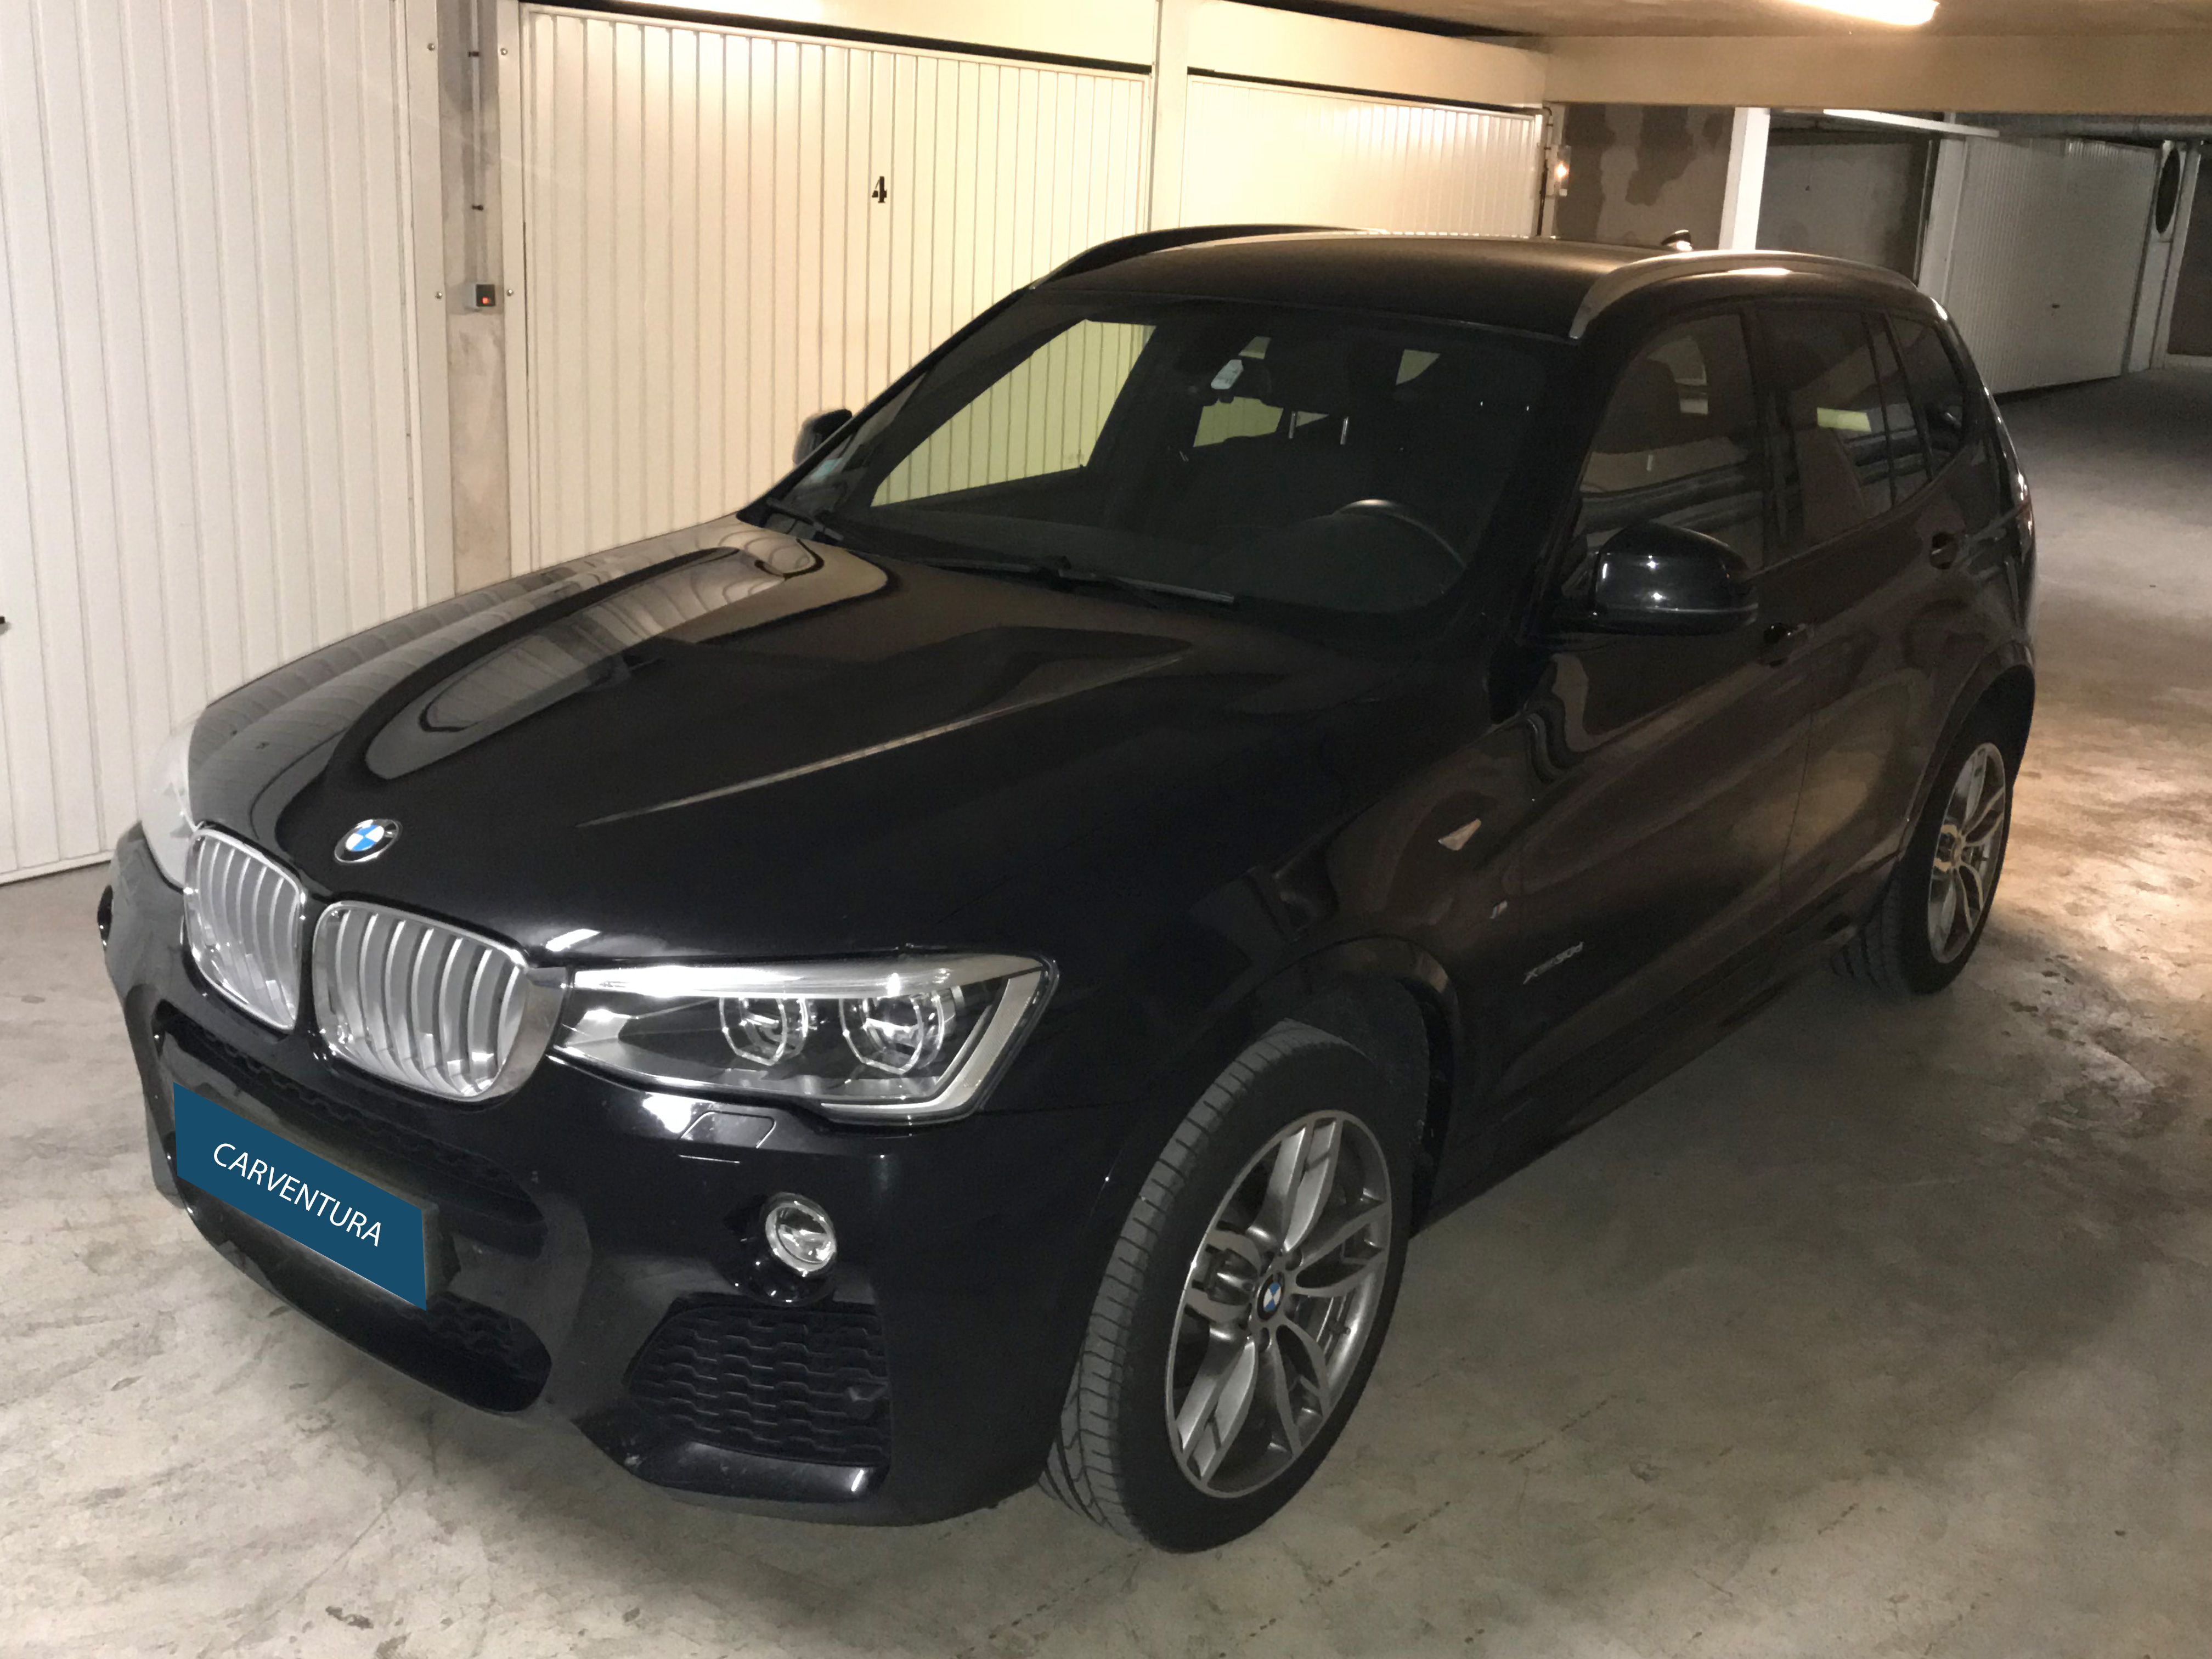 bmw x3 3 0 d 260 m sport xdrive bva carventura. Black Bedroom Furniture Sets. Home Design Ideas